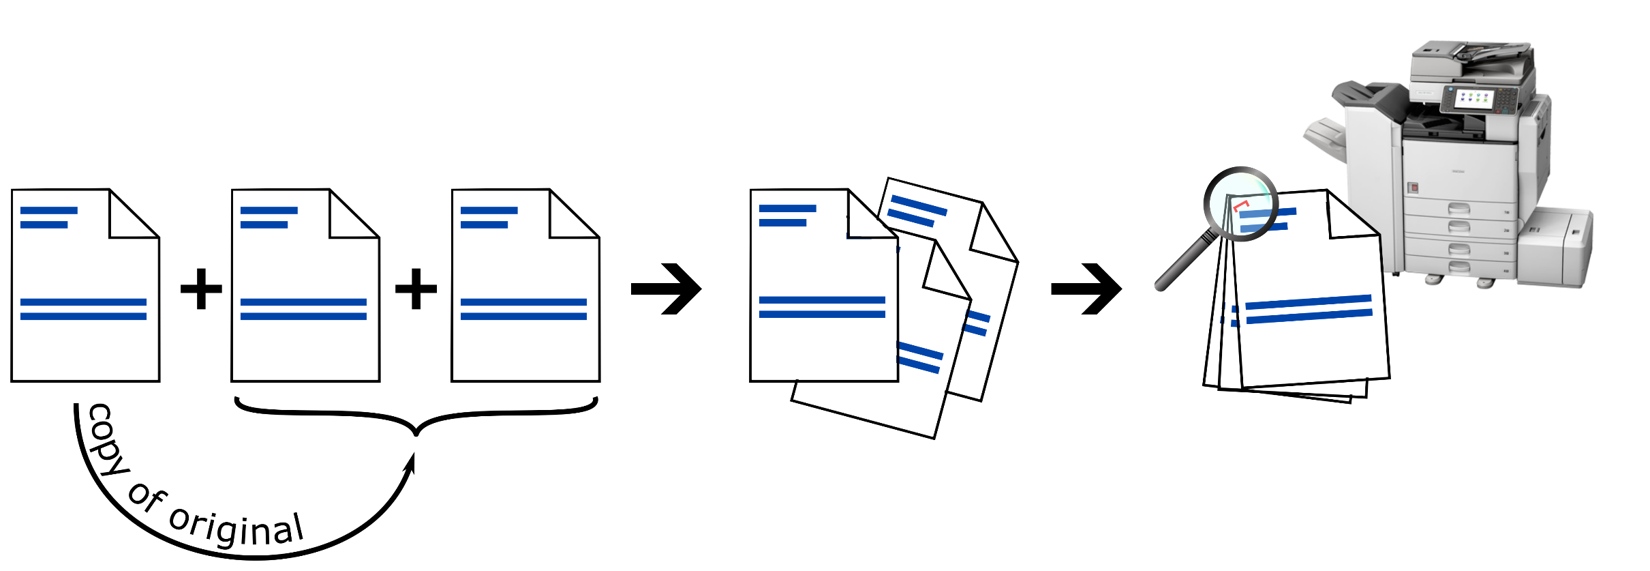 duplicate or triplicate and staple